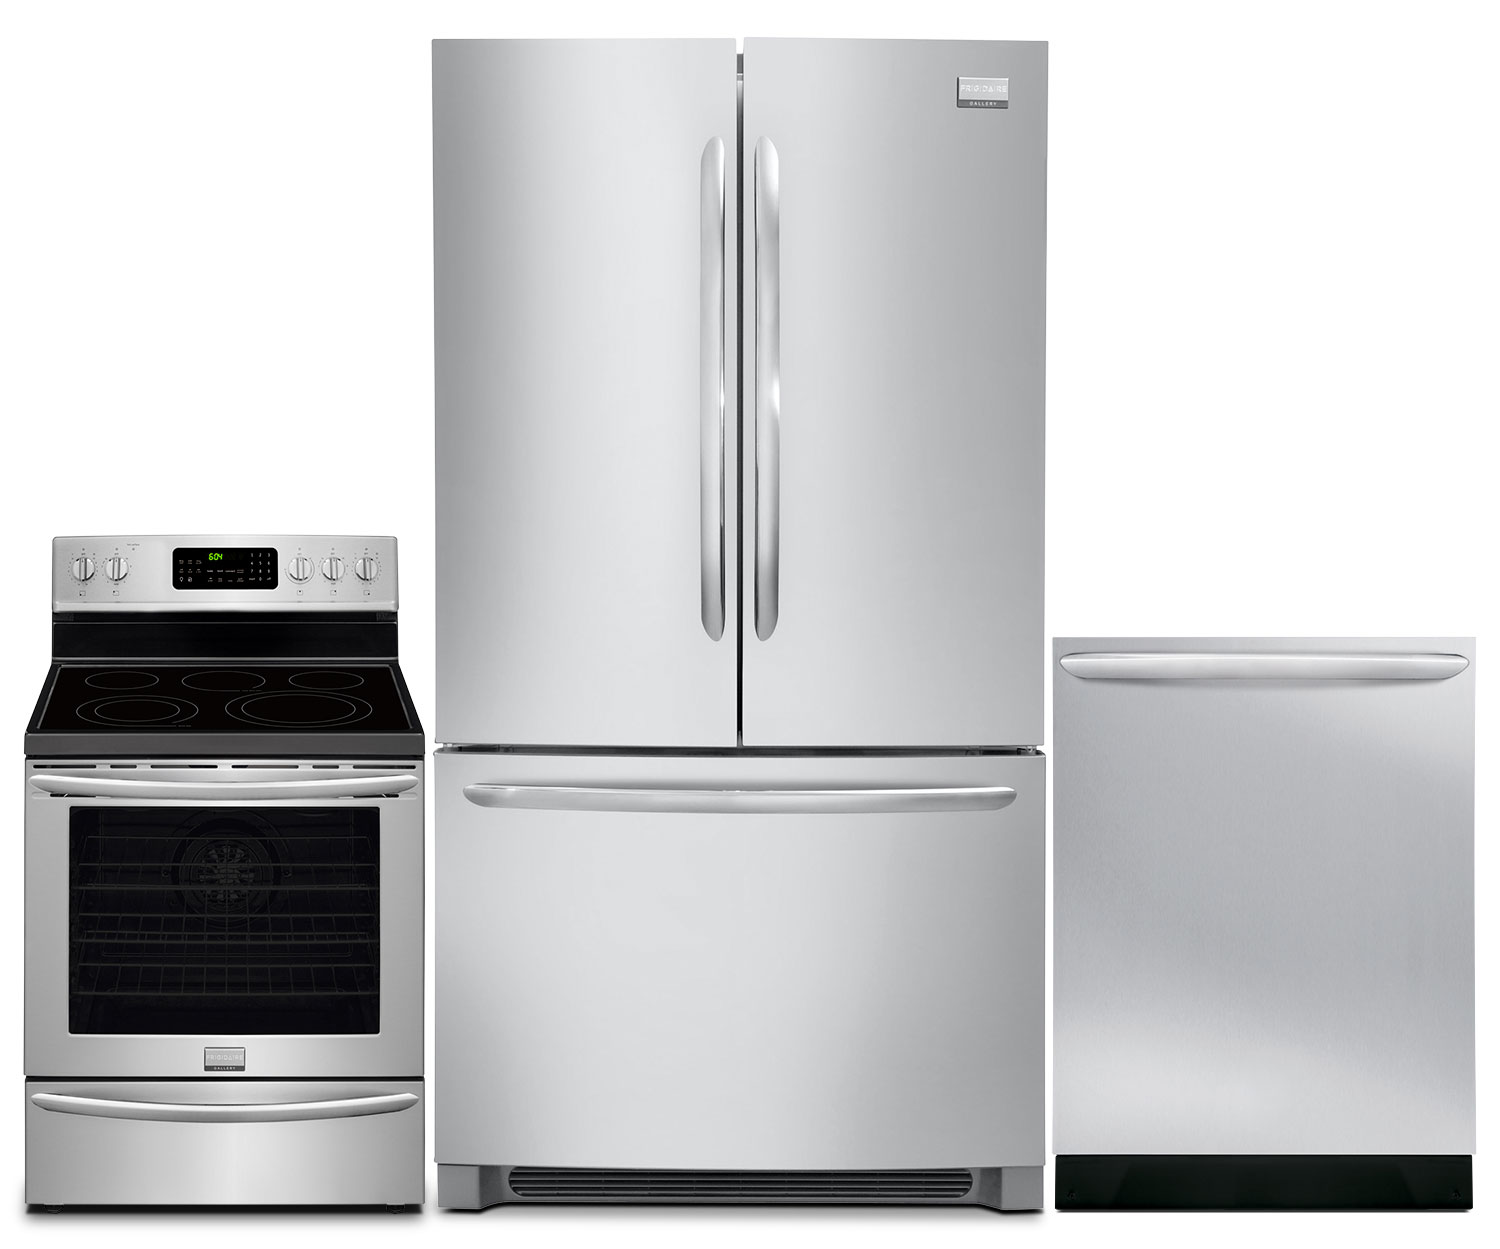 Cooking Products - Frigidaire Gallery 23 Cu. Ft. Refrigerator, 5.8 Cu. Ft. Range and Dishwasher – Stainless Steel